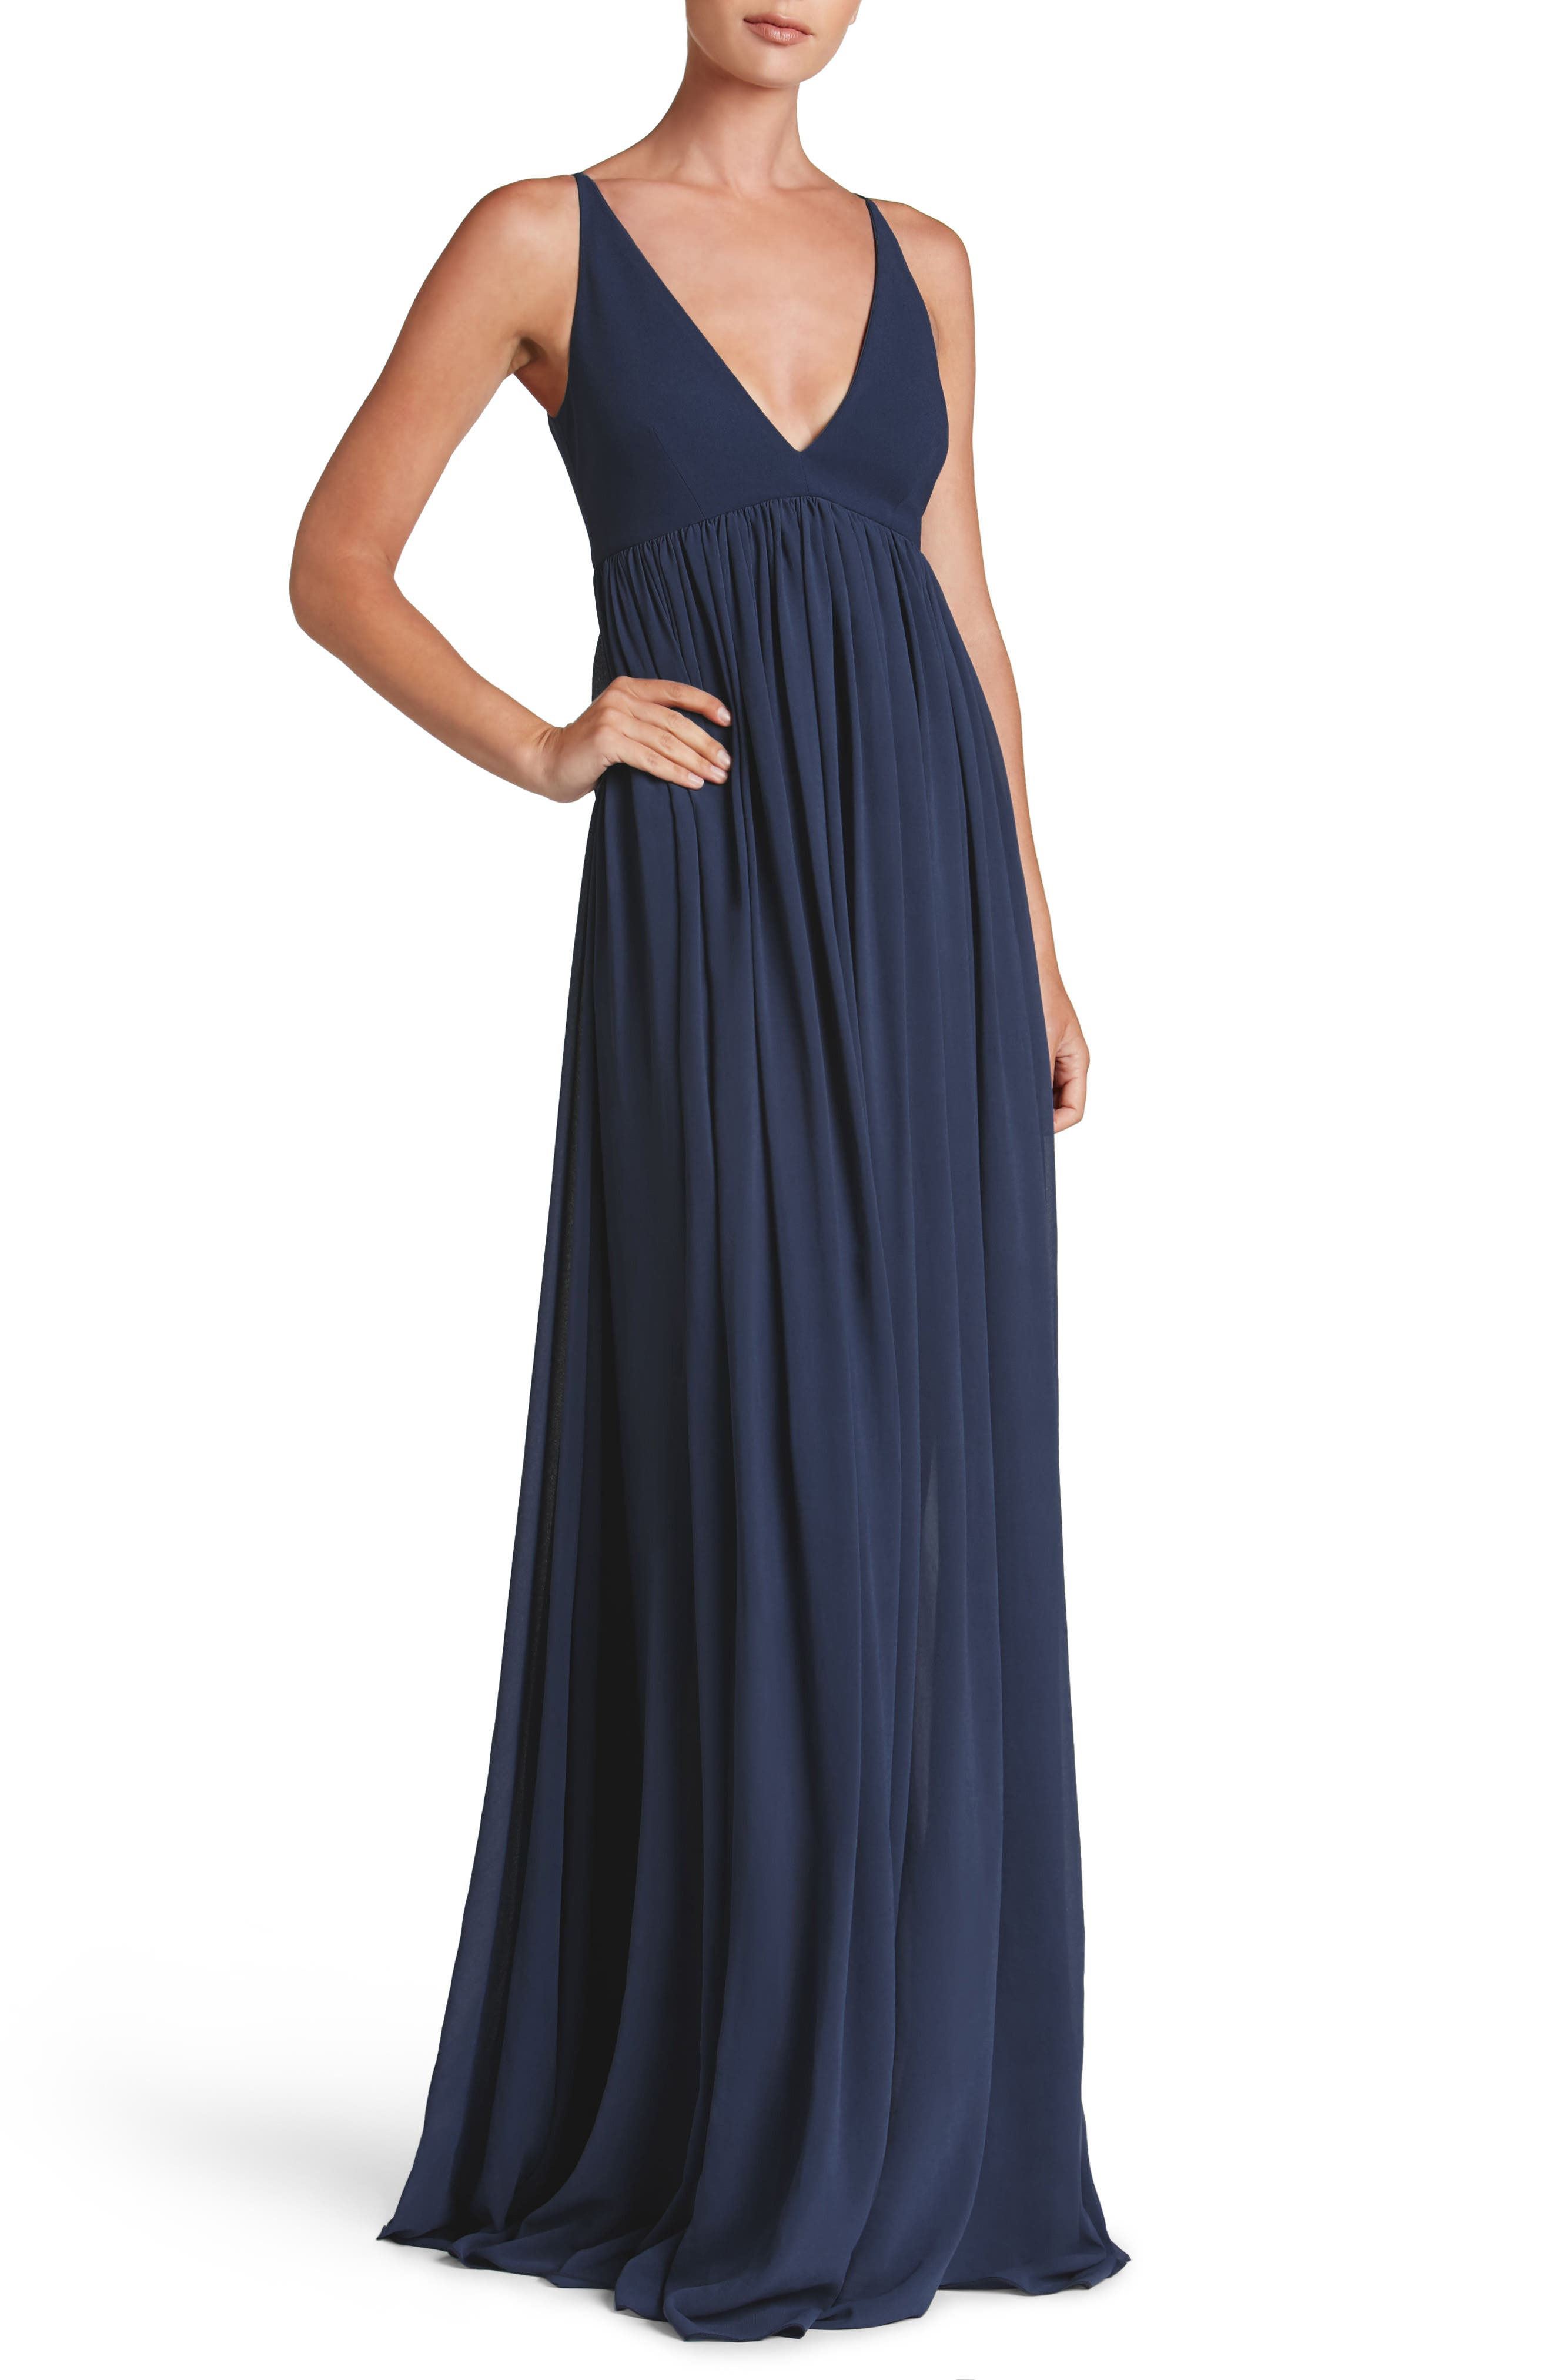 DRESS THE POPULATION Phoebe Chiffon Gown, Main, color, 456